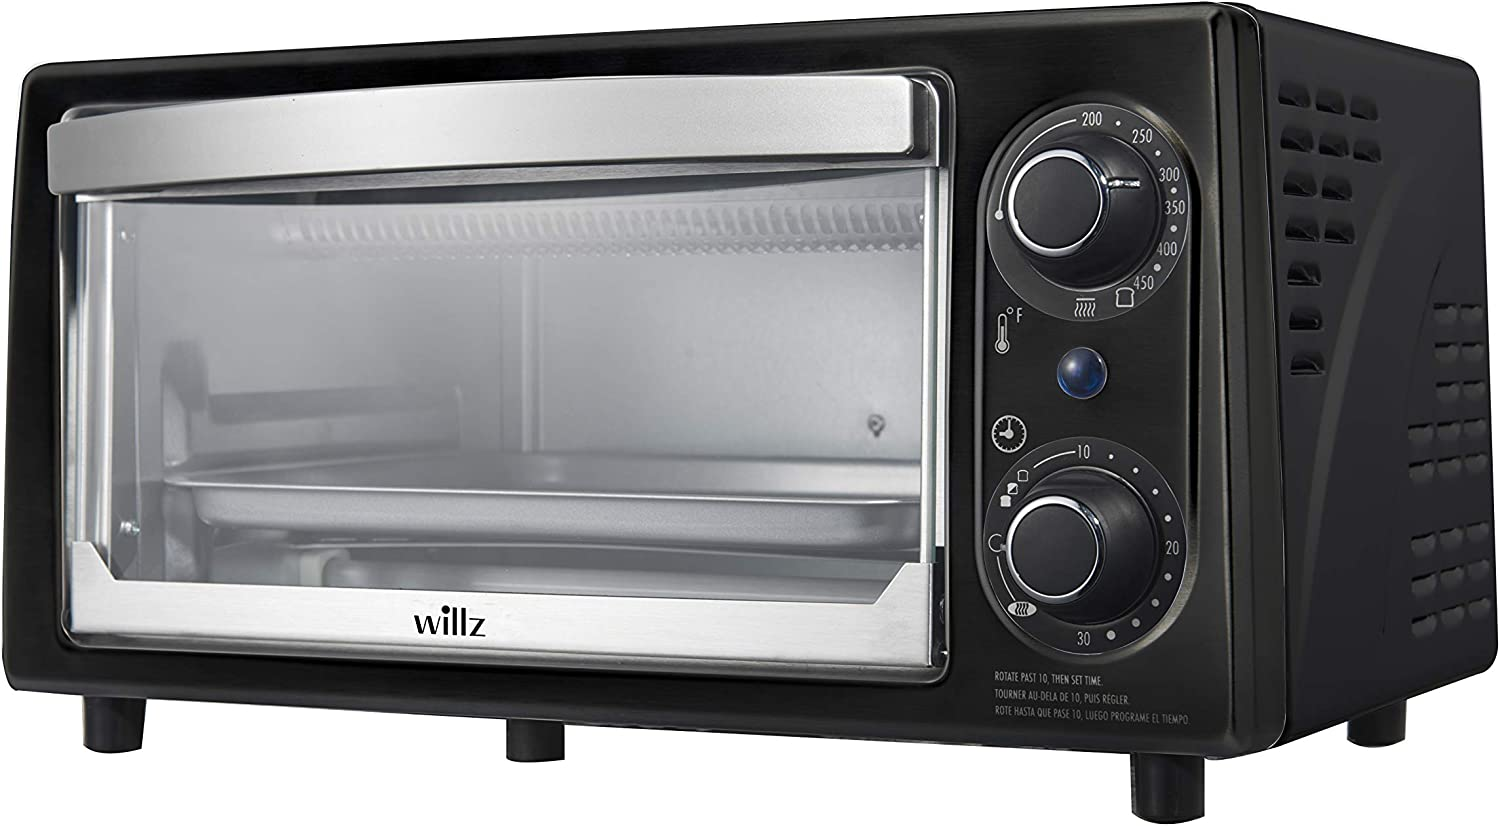 Willz KWS1010 Countertop Toaster Oven, 4 Slice, Matte Black